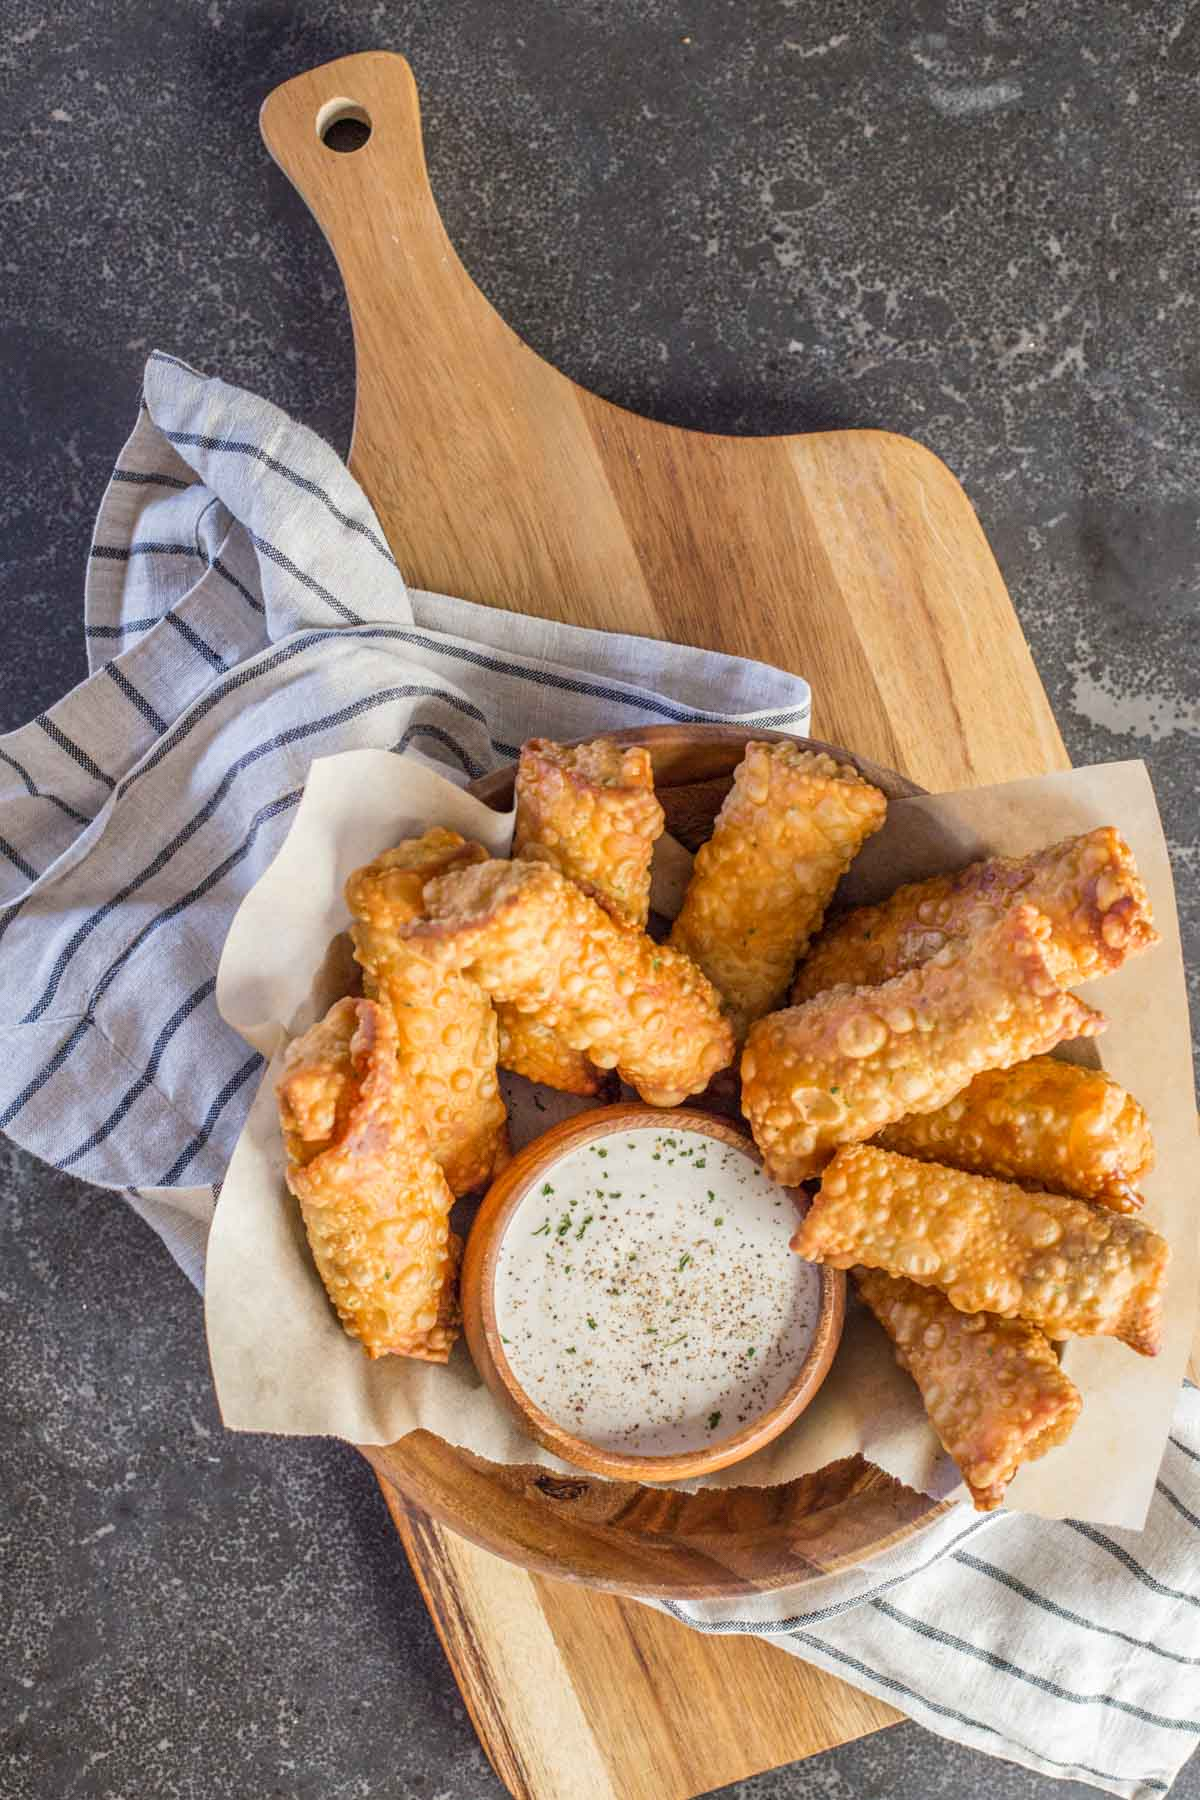 Fried Sloppy Joe Rolls in a wood bowl, along with a small wood bowl of ranch dip.